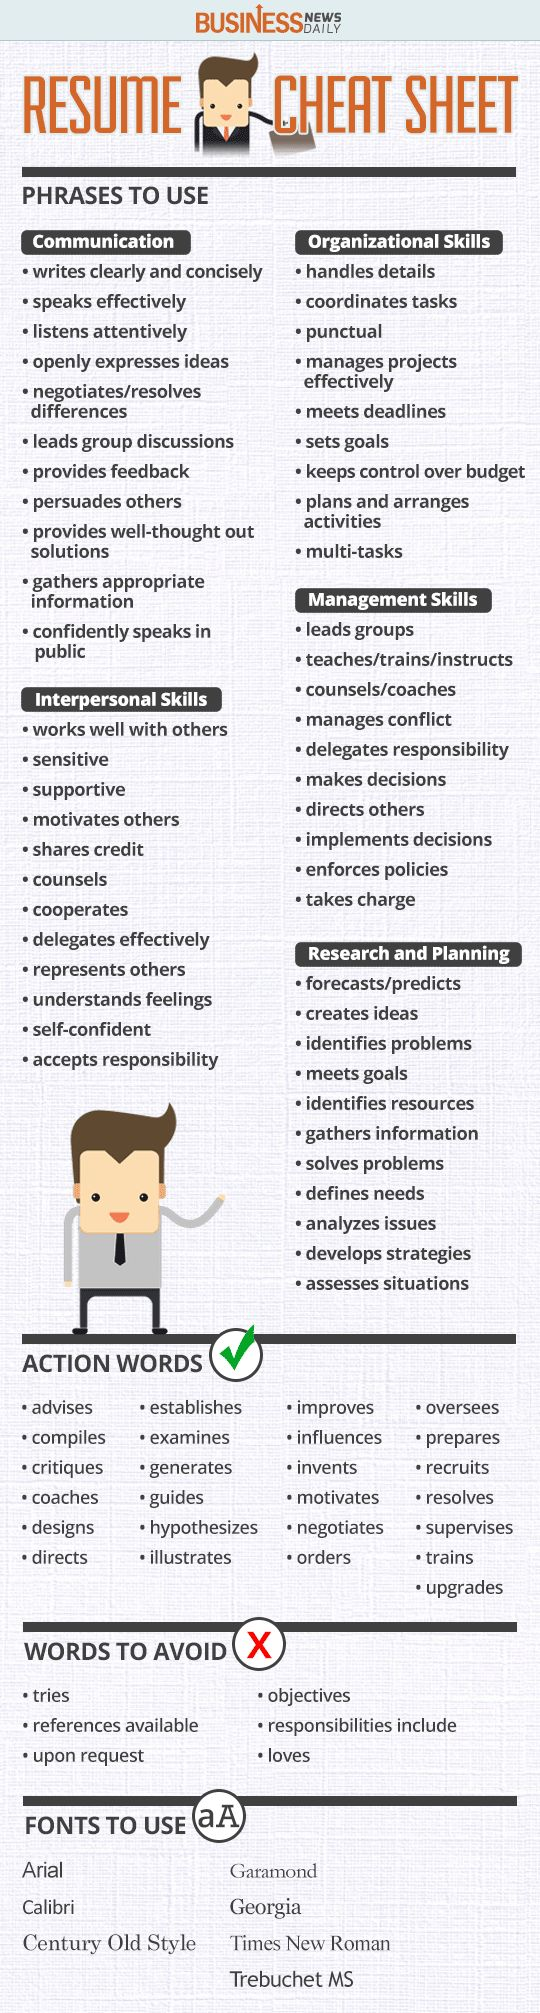 Opposenewapstandardsus  Terrific  Ideas About Resume On Pinterest  Cv Format Resume  With Fetching Resume Cheat Sheet Infographic Andrews Almost Done With A Complete Unit On Employment Which With Cute Critical Care Nurse Resume Also Hobbies To Put On Resume In Addition Special Skills To Put On Resume And Mba Application Resume As Well As Resume Examples  Additionally What Does A Resume Cover Letter Look Like From Pinterestcom With Opposenewapstandardsus  Fetching  Ideas About Resume On Pinterest  Cv Format Resume  With Cute Resume Cheat Sheet Infographic Andrews Almost Done With A Complete Unit On Employment Which And Terrific Critical Care Nurse Resume Also Hobbies To Put On Resume In Addition Special Skills To Put On Resume From Pinterestcom